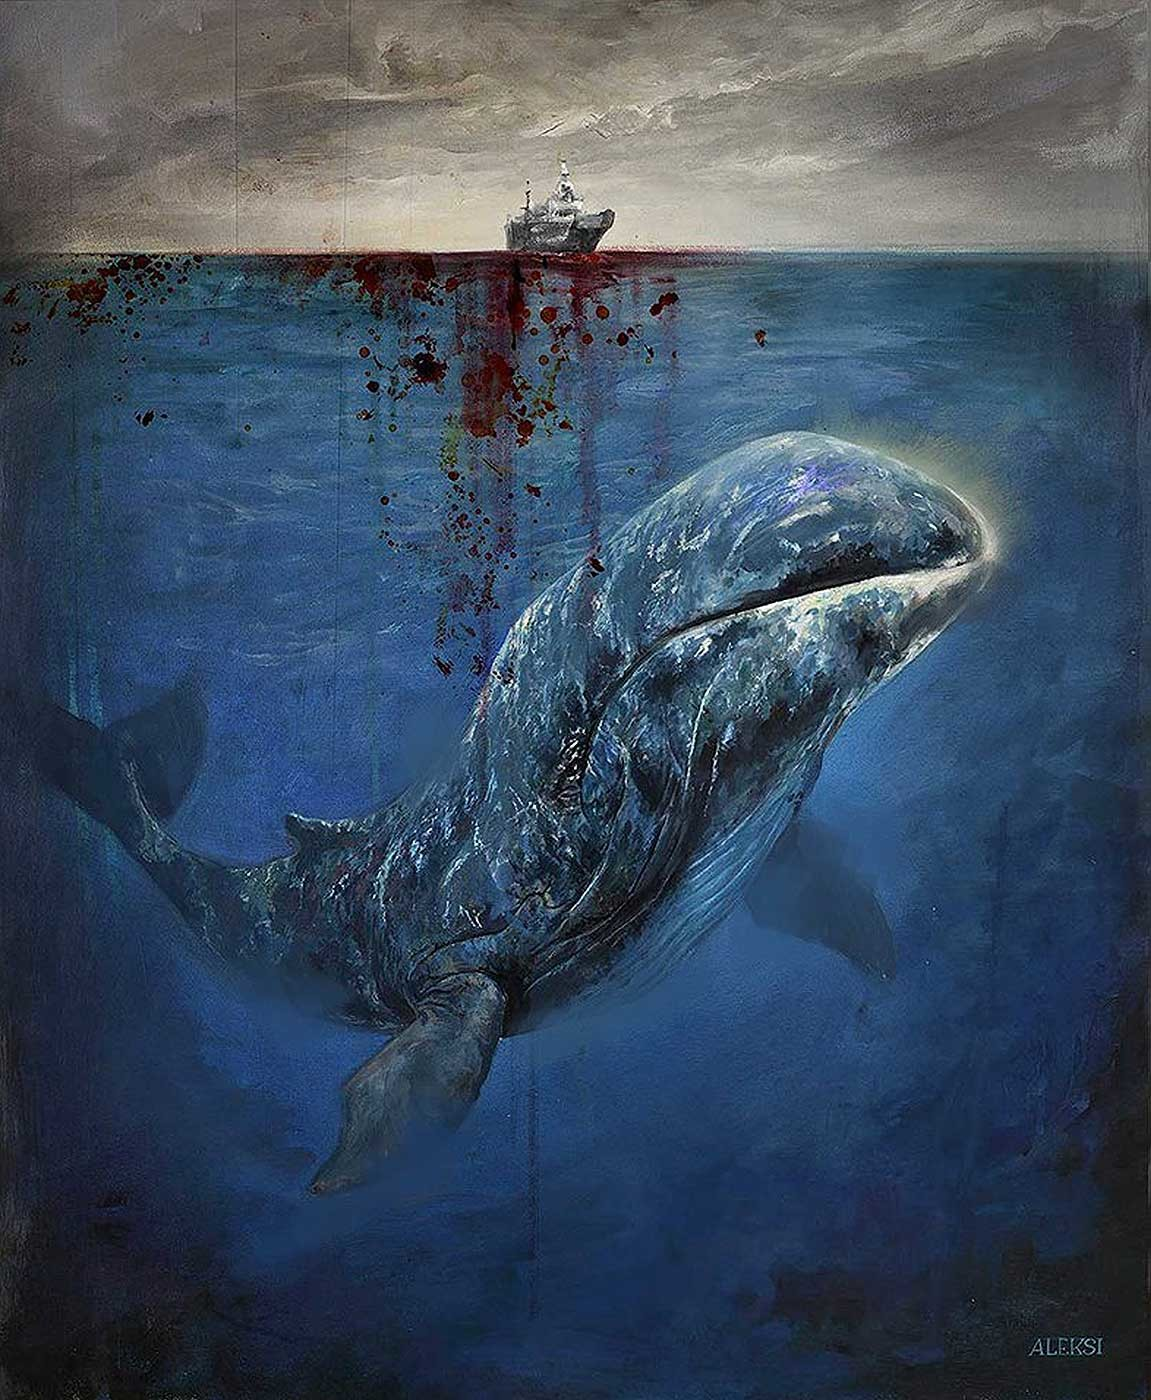 Aleksi briclot bowhex whale final small web